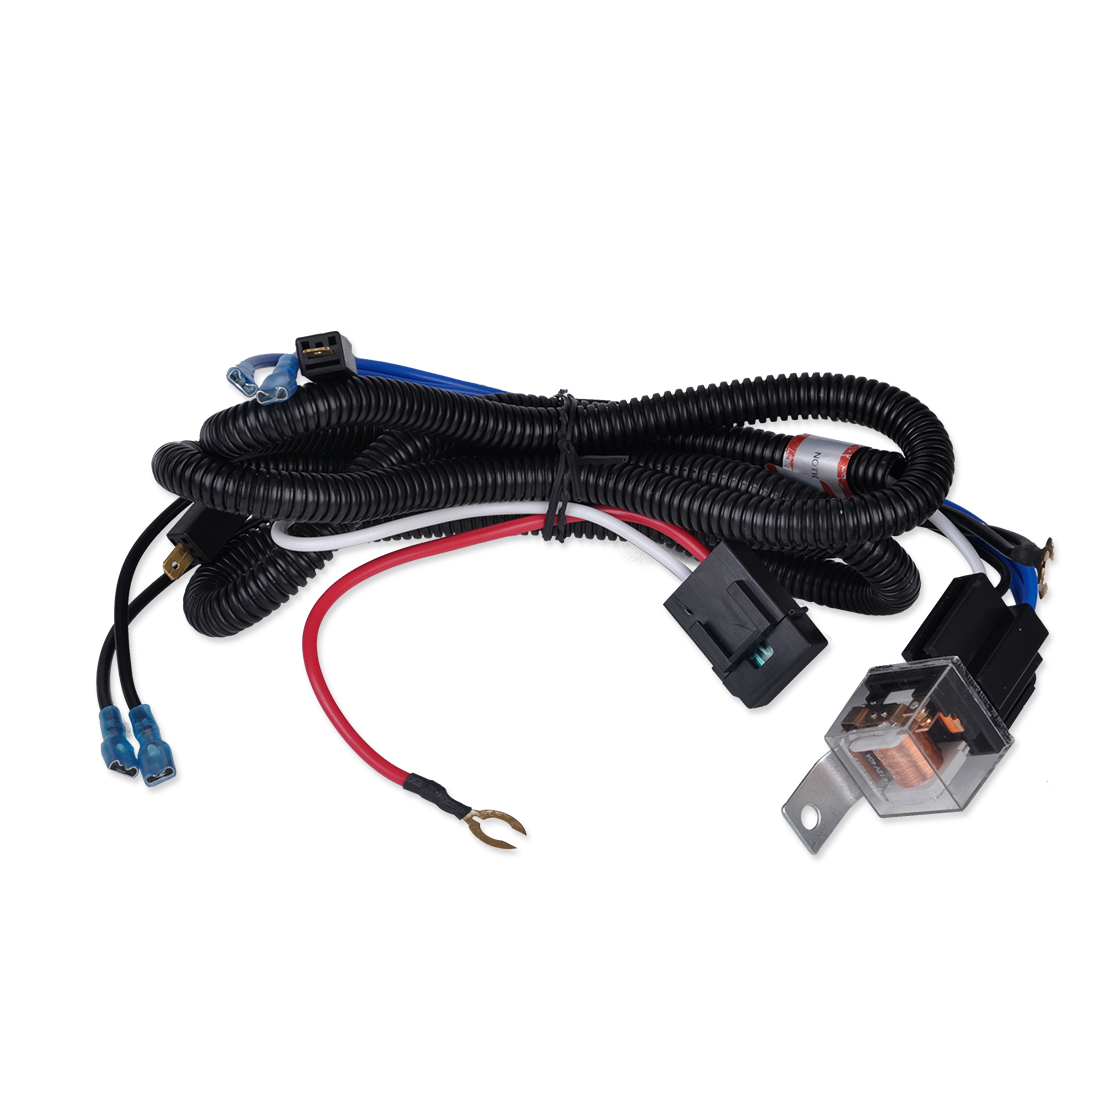 small resolution of citall 12v car truck grille mount blast tone horn wiring harness relay kit for ford toyota suzuki peugeot kia honda mazda audi in cables adapters sockets